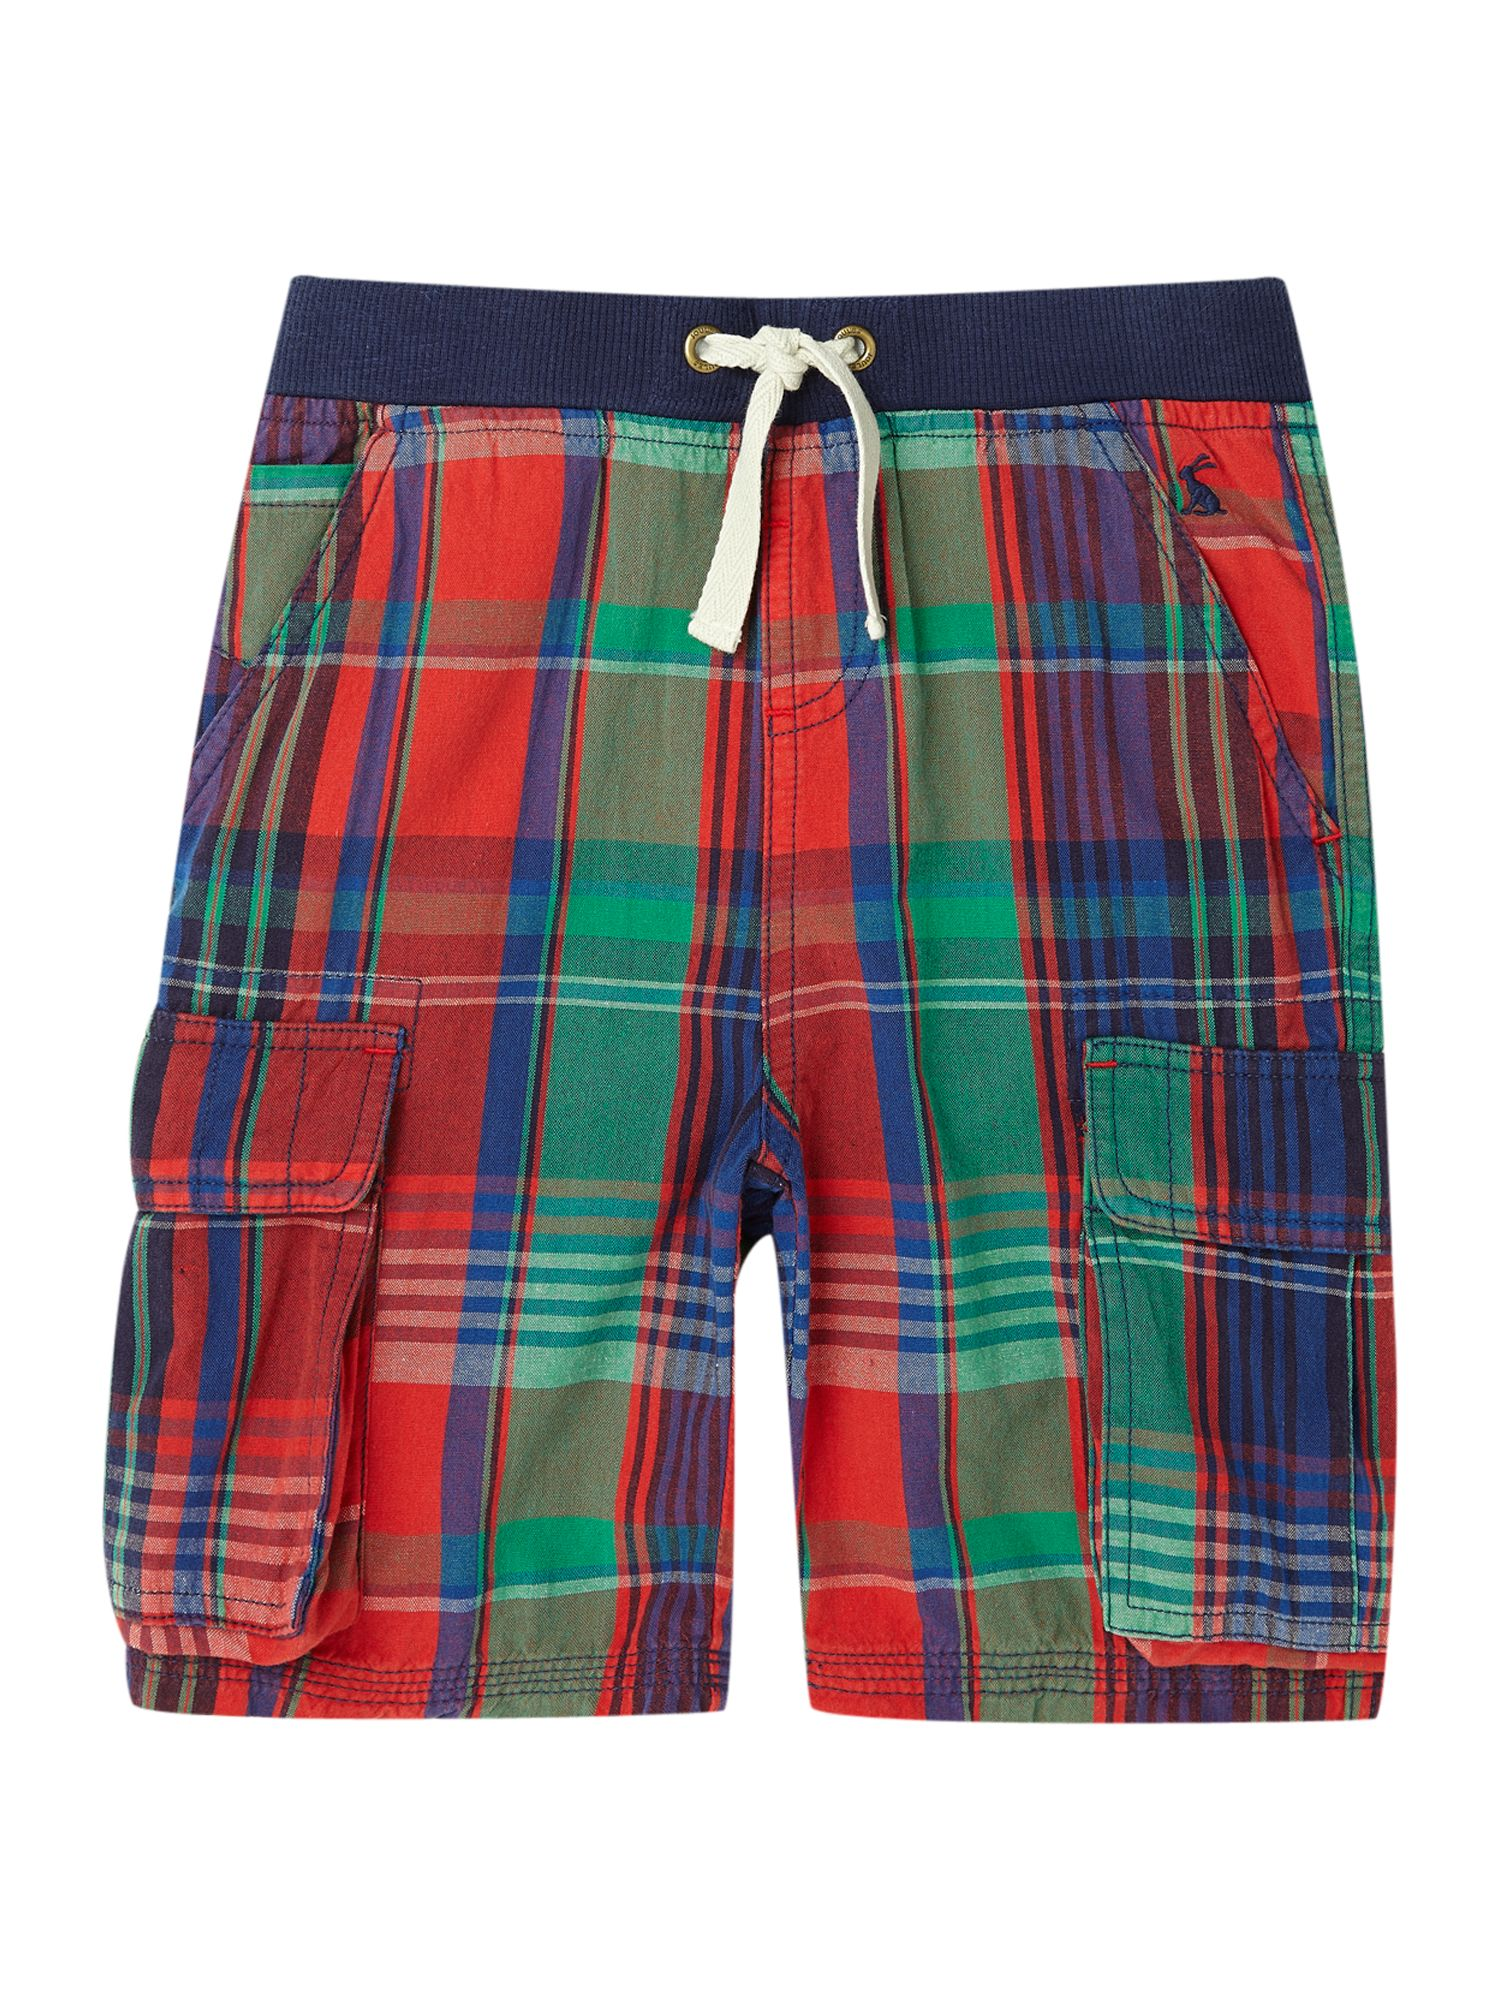 Boys check print short with cargo pockets